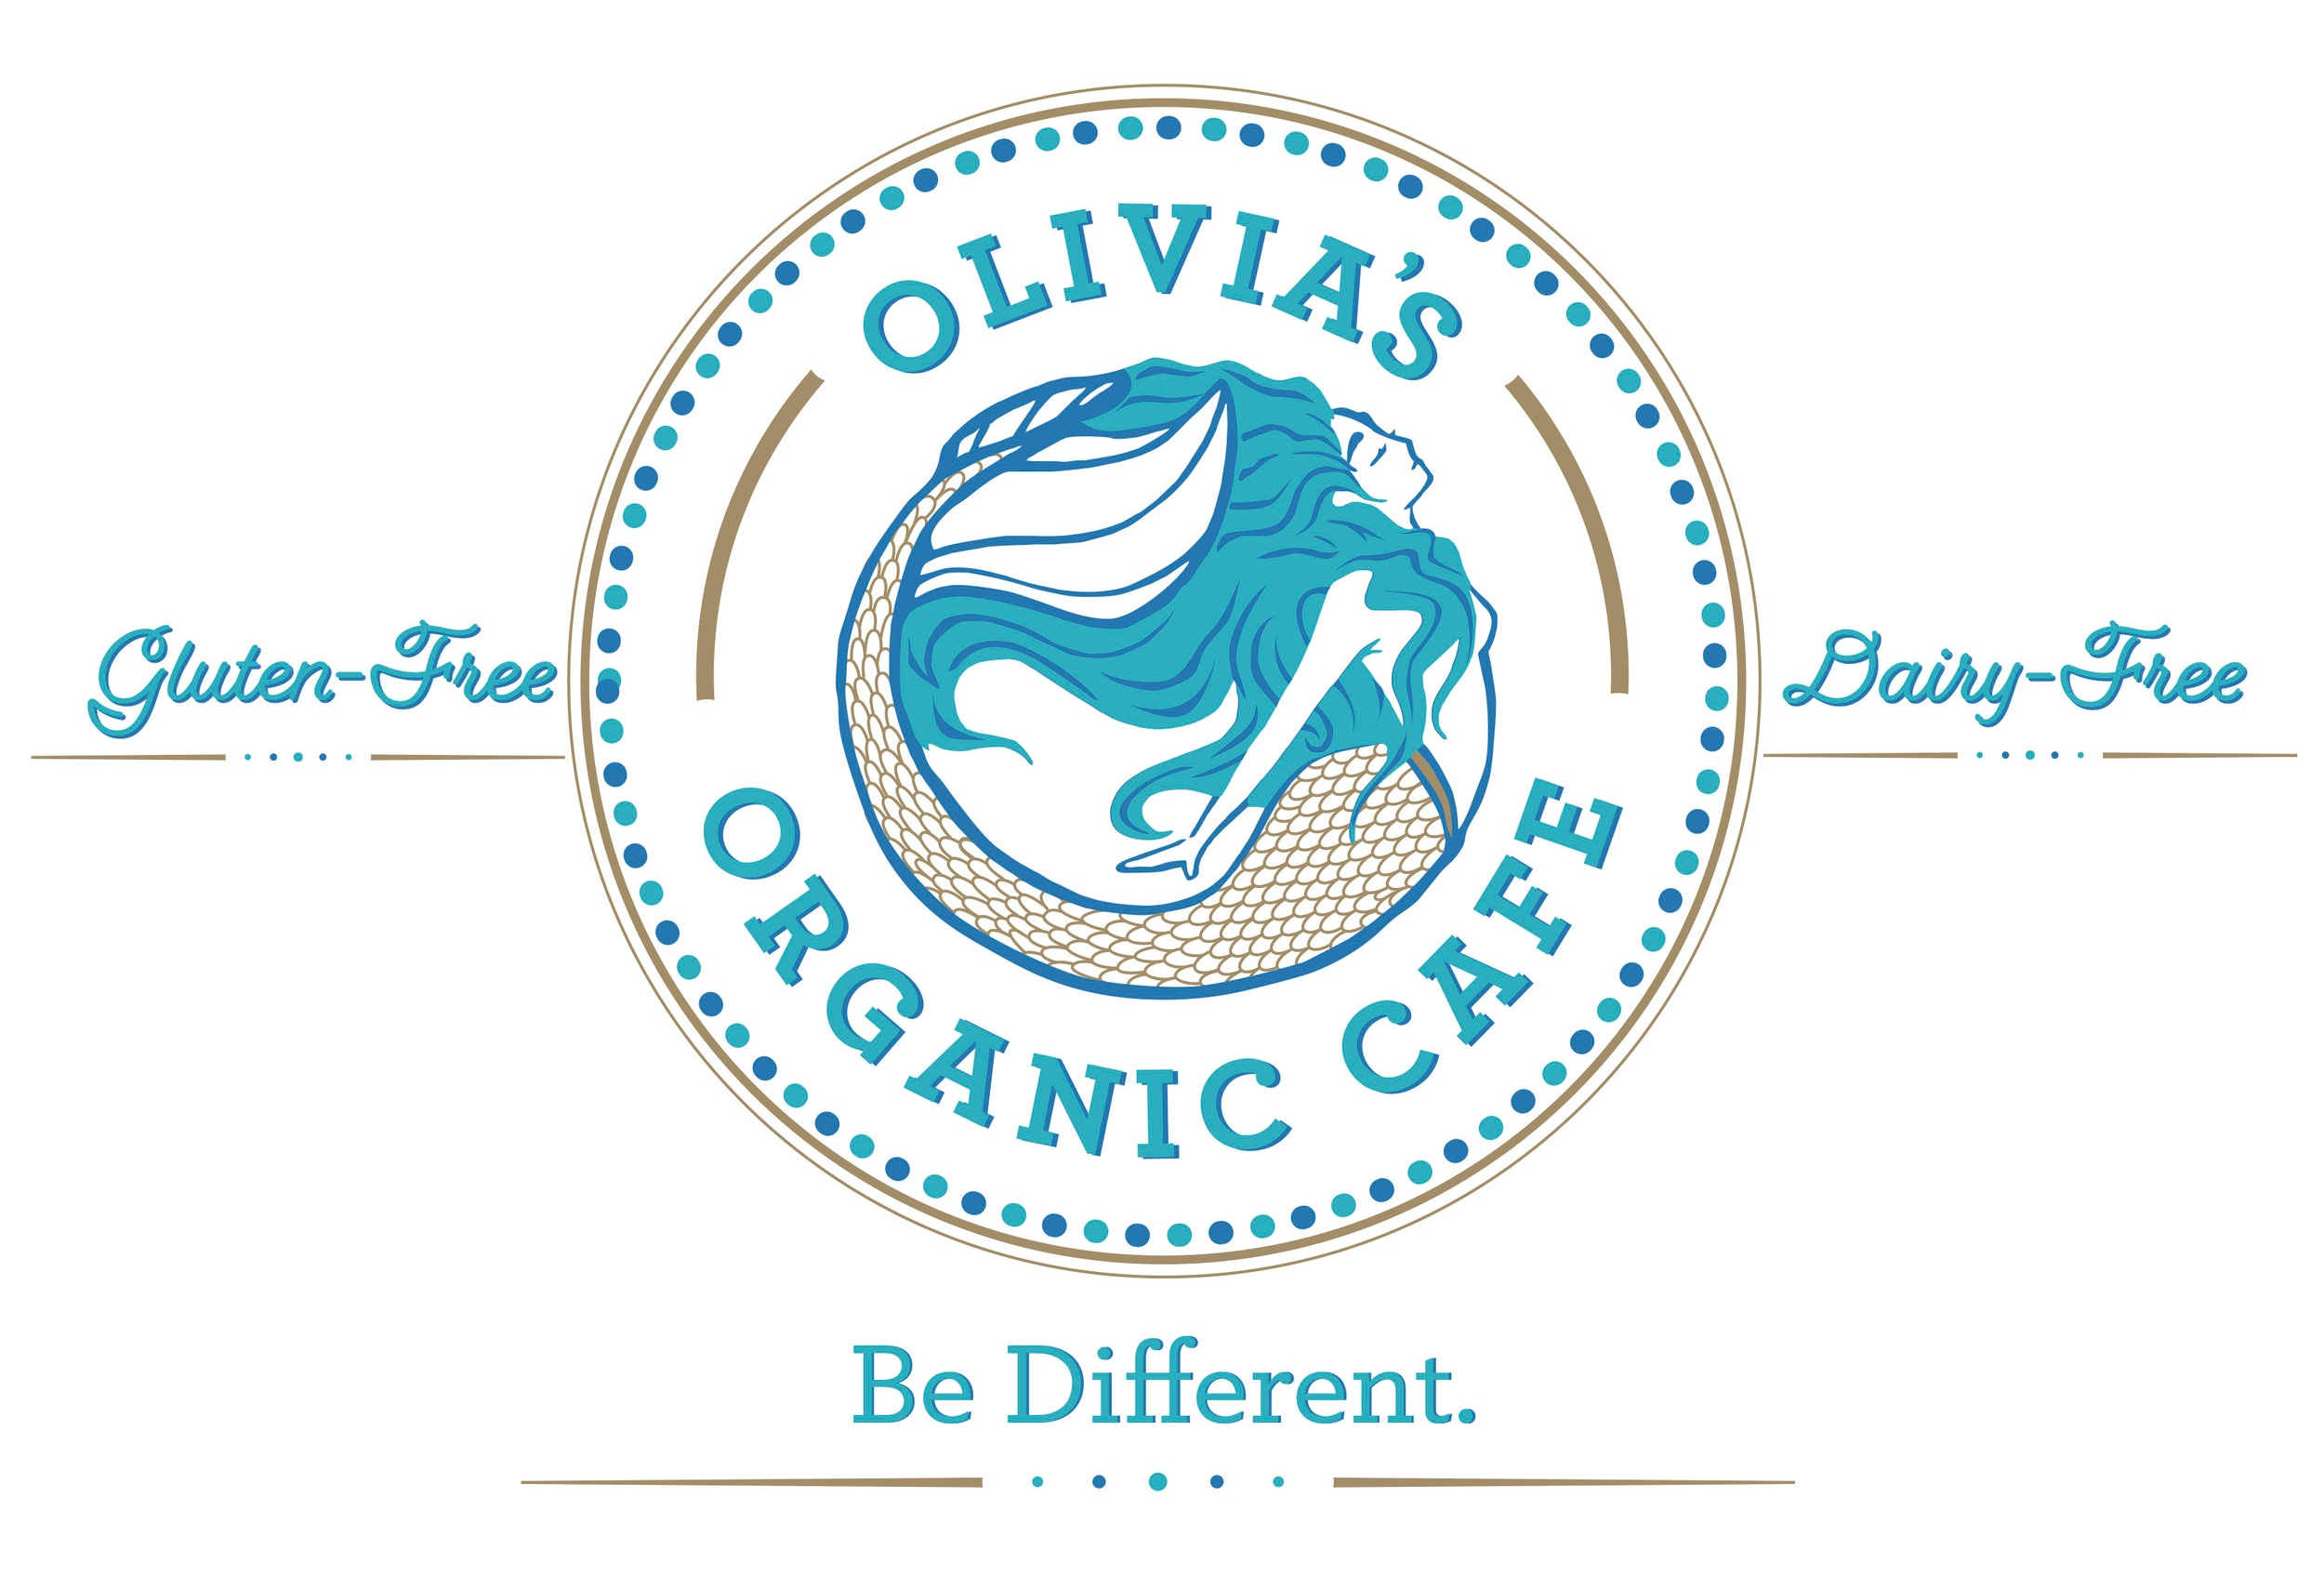 Olivia%27s+Organic+Cafe+New+Logo+Build+%281%29.jpg